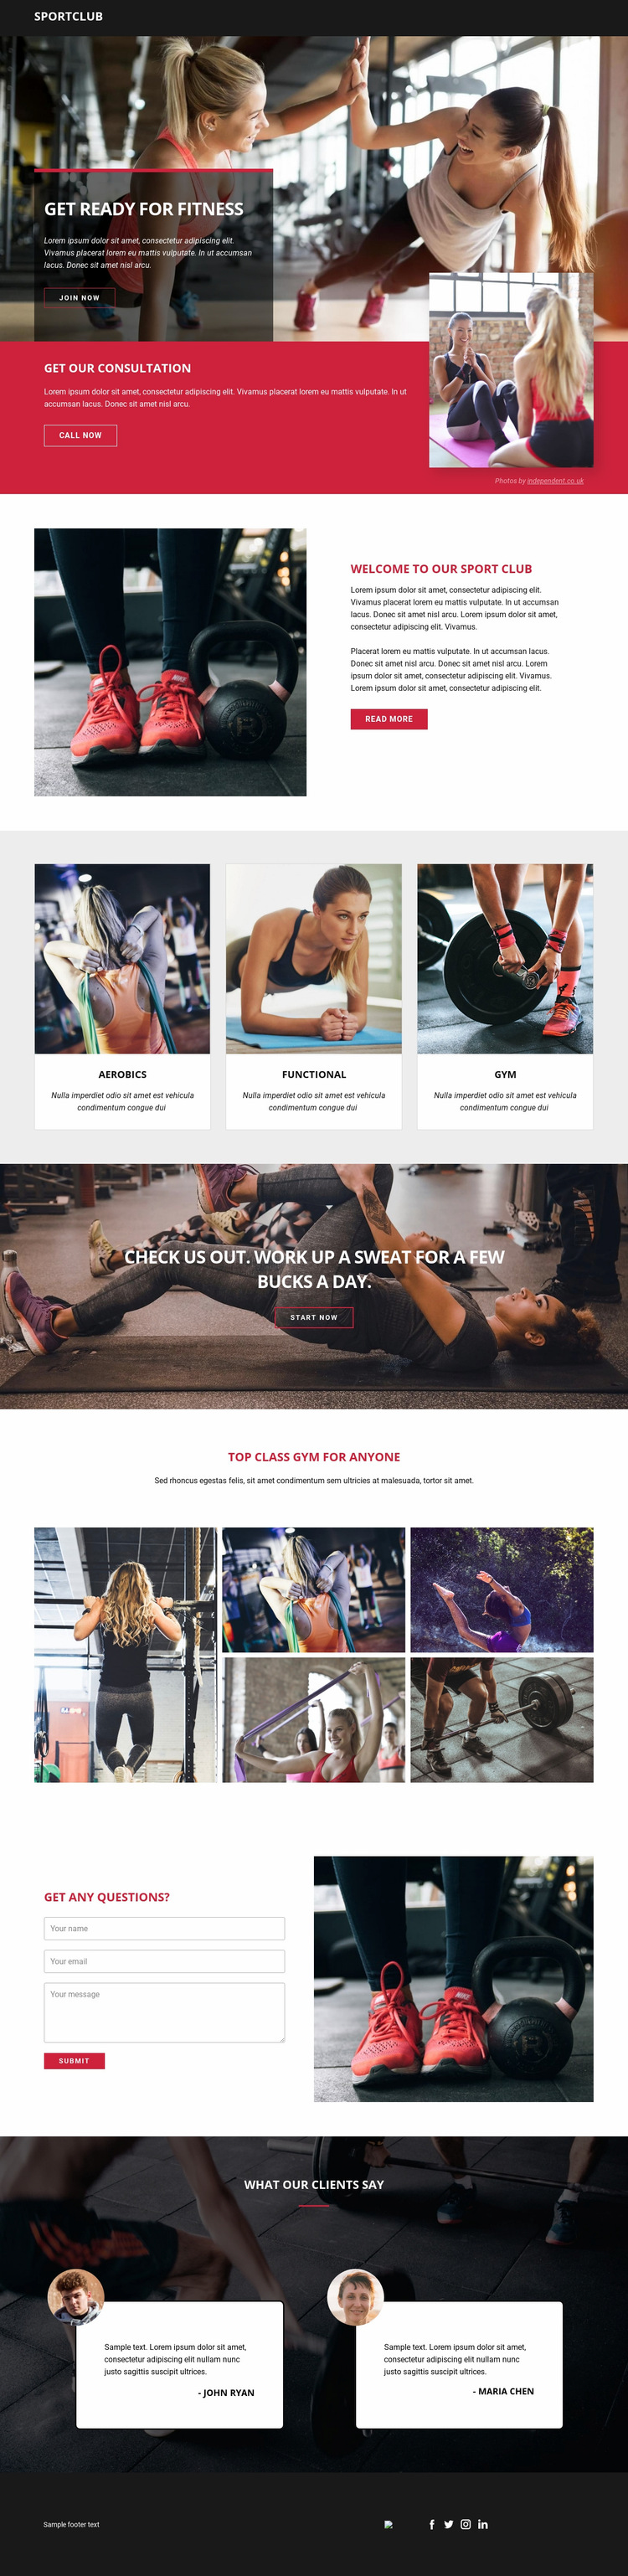 Ready for fitness and sports Web Page Design